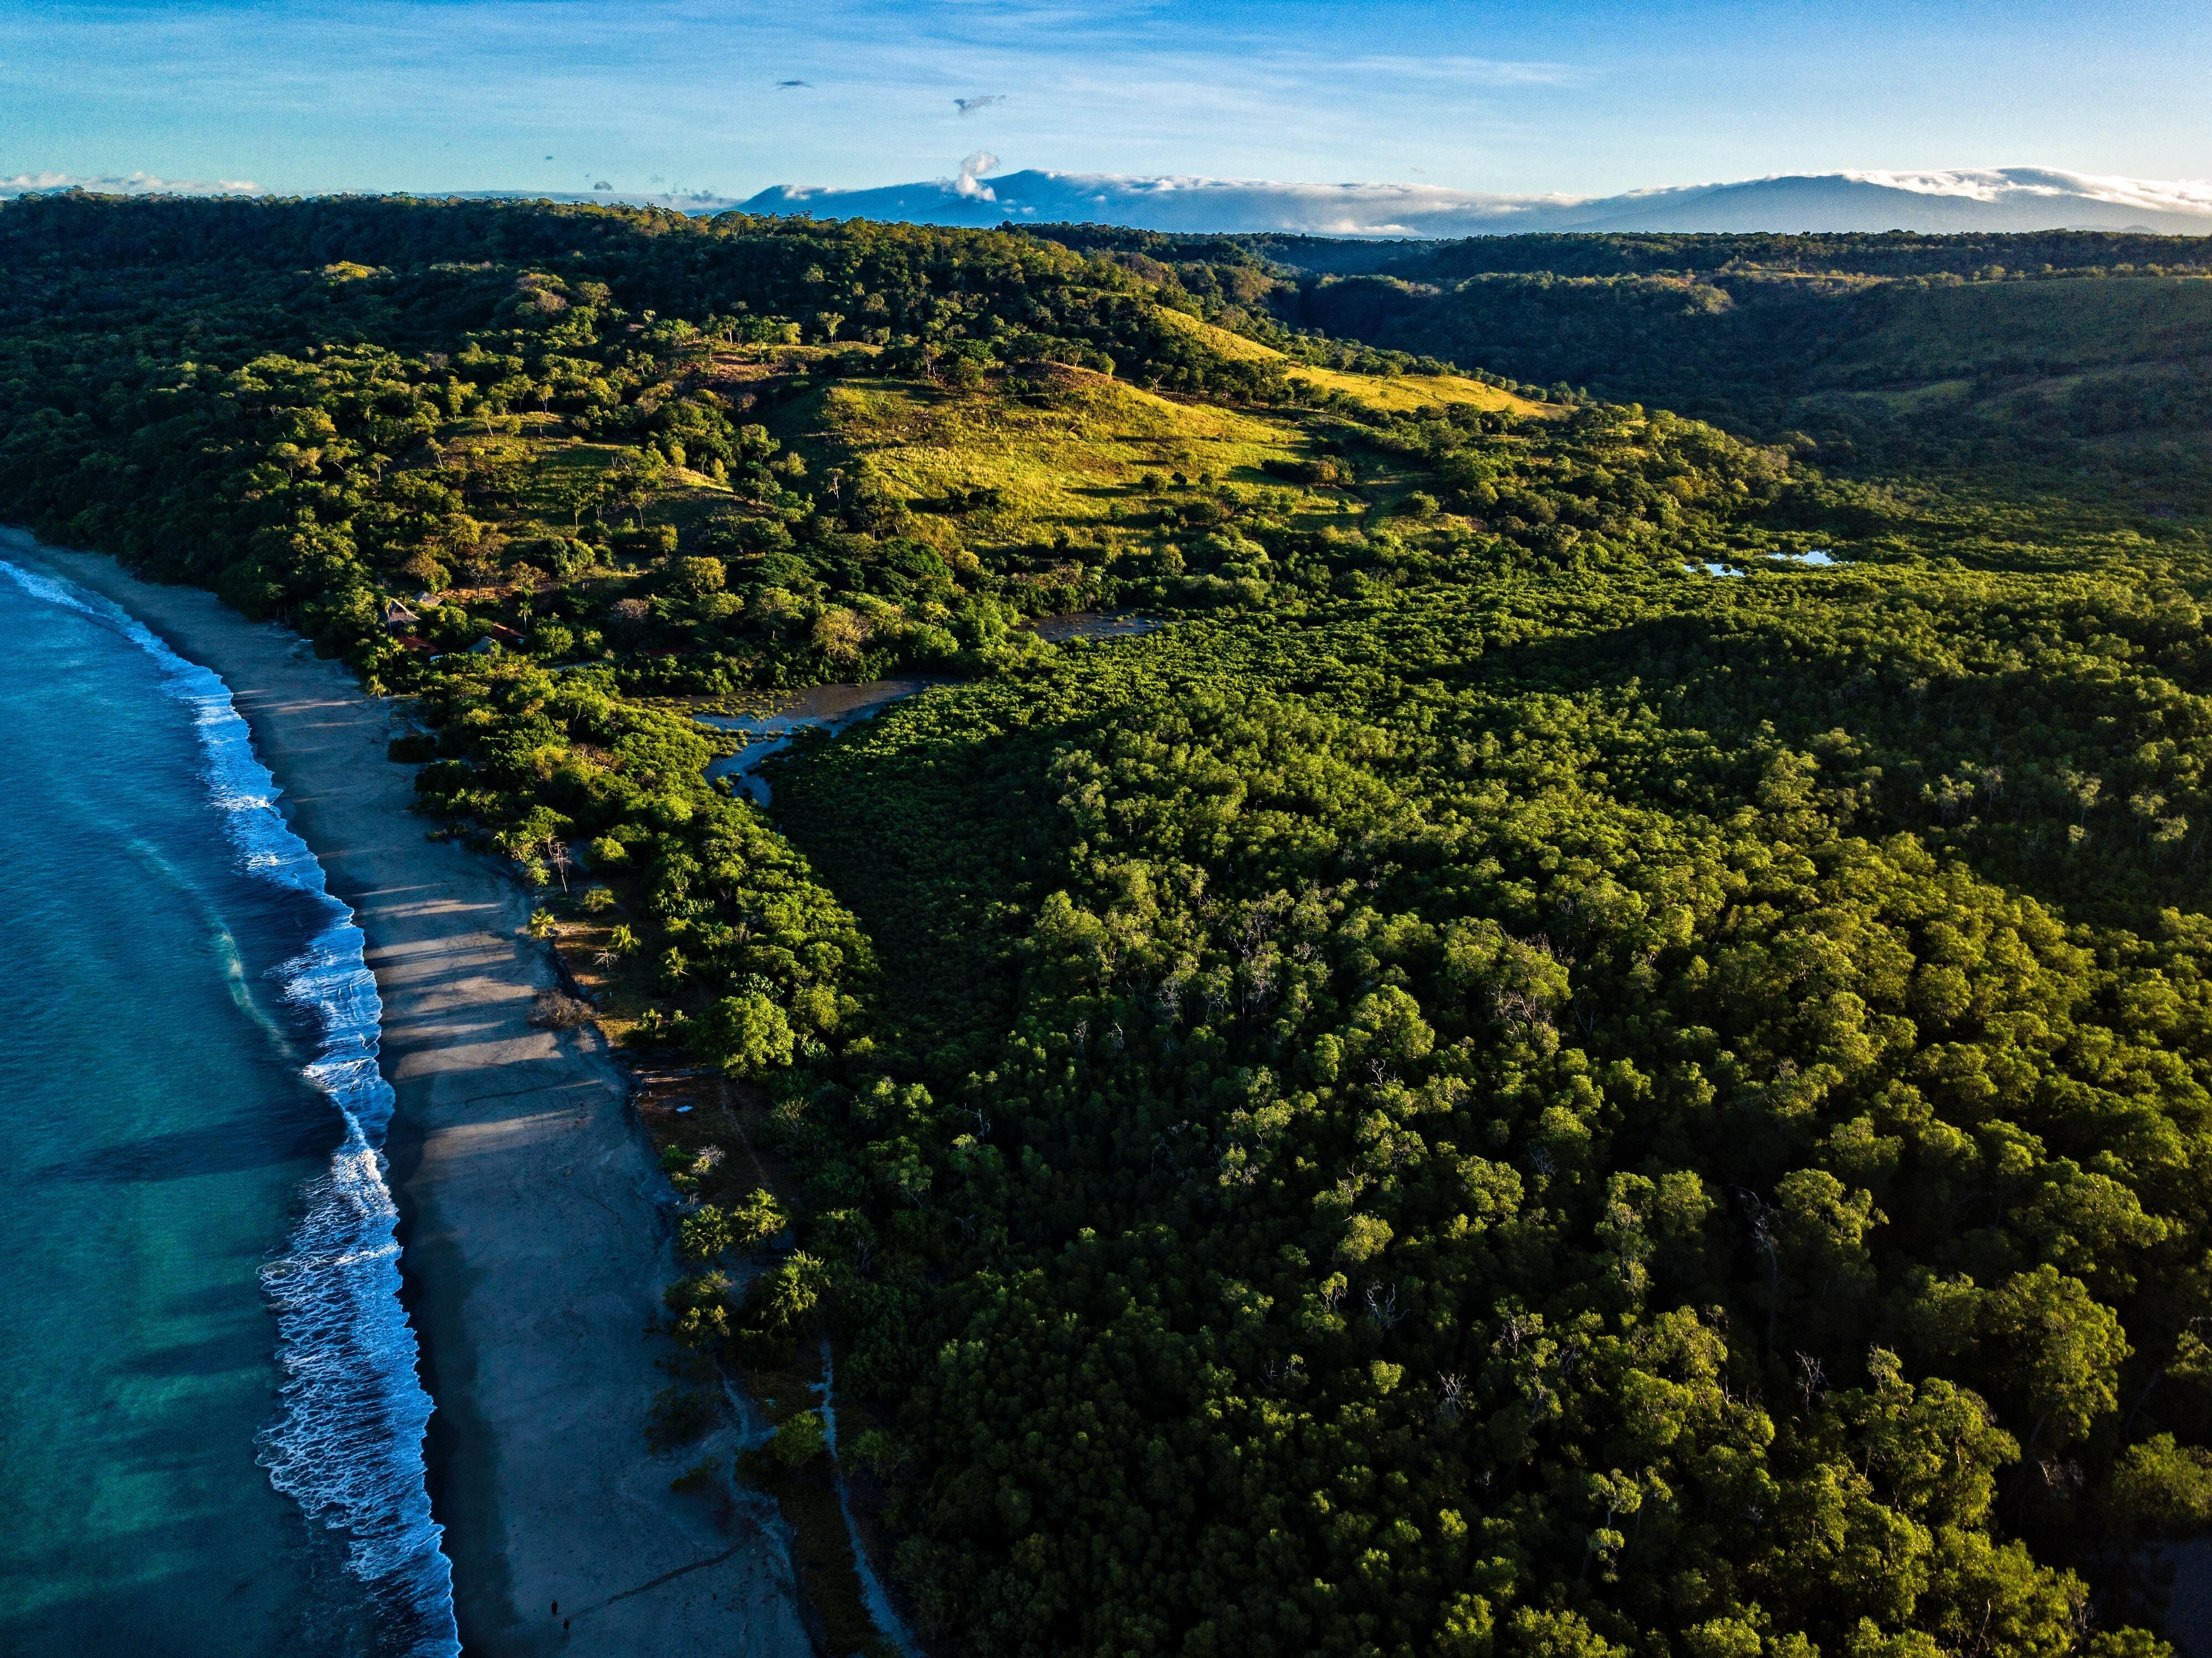 Spend Your Honeymoon Enjoying the Tranquility and Natural Beauty of Costa Rica